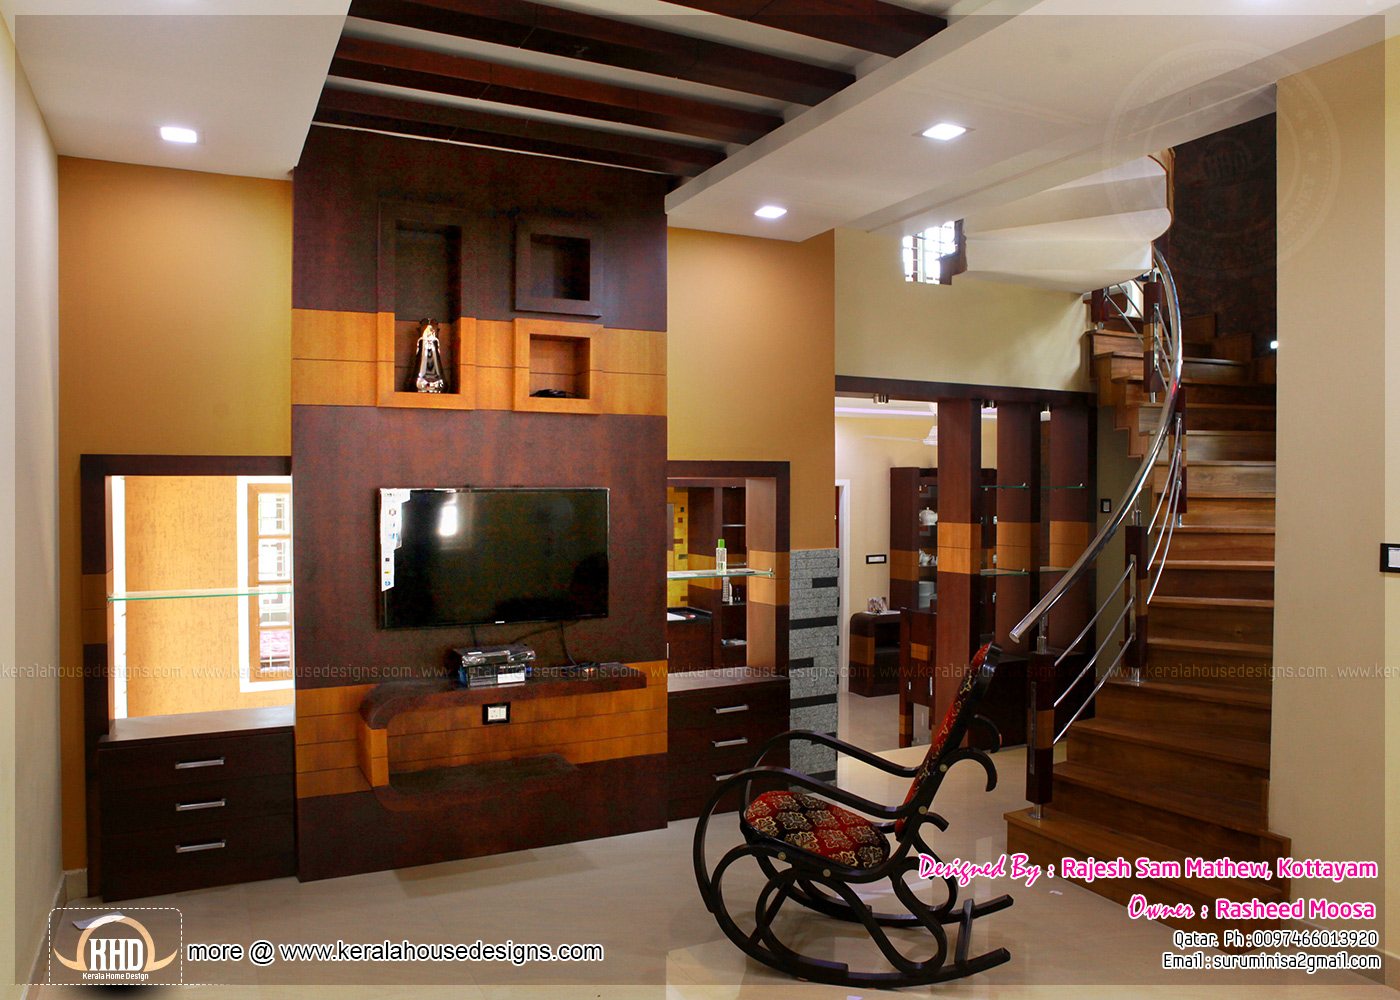 Kerala interior design with photos kerala home design for Different interior designs of houses